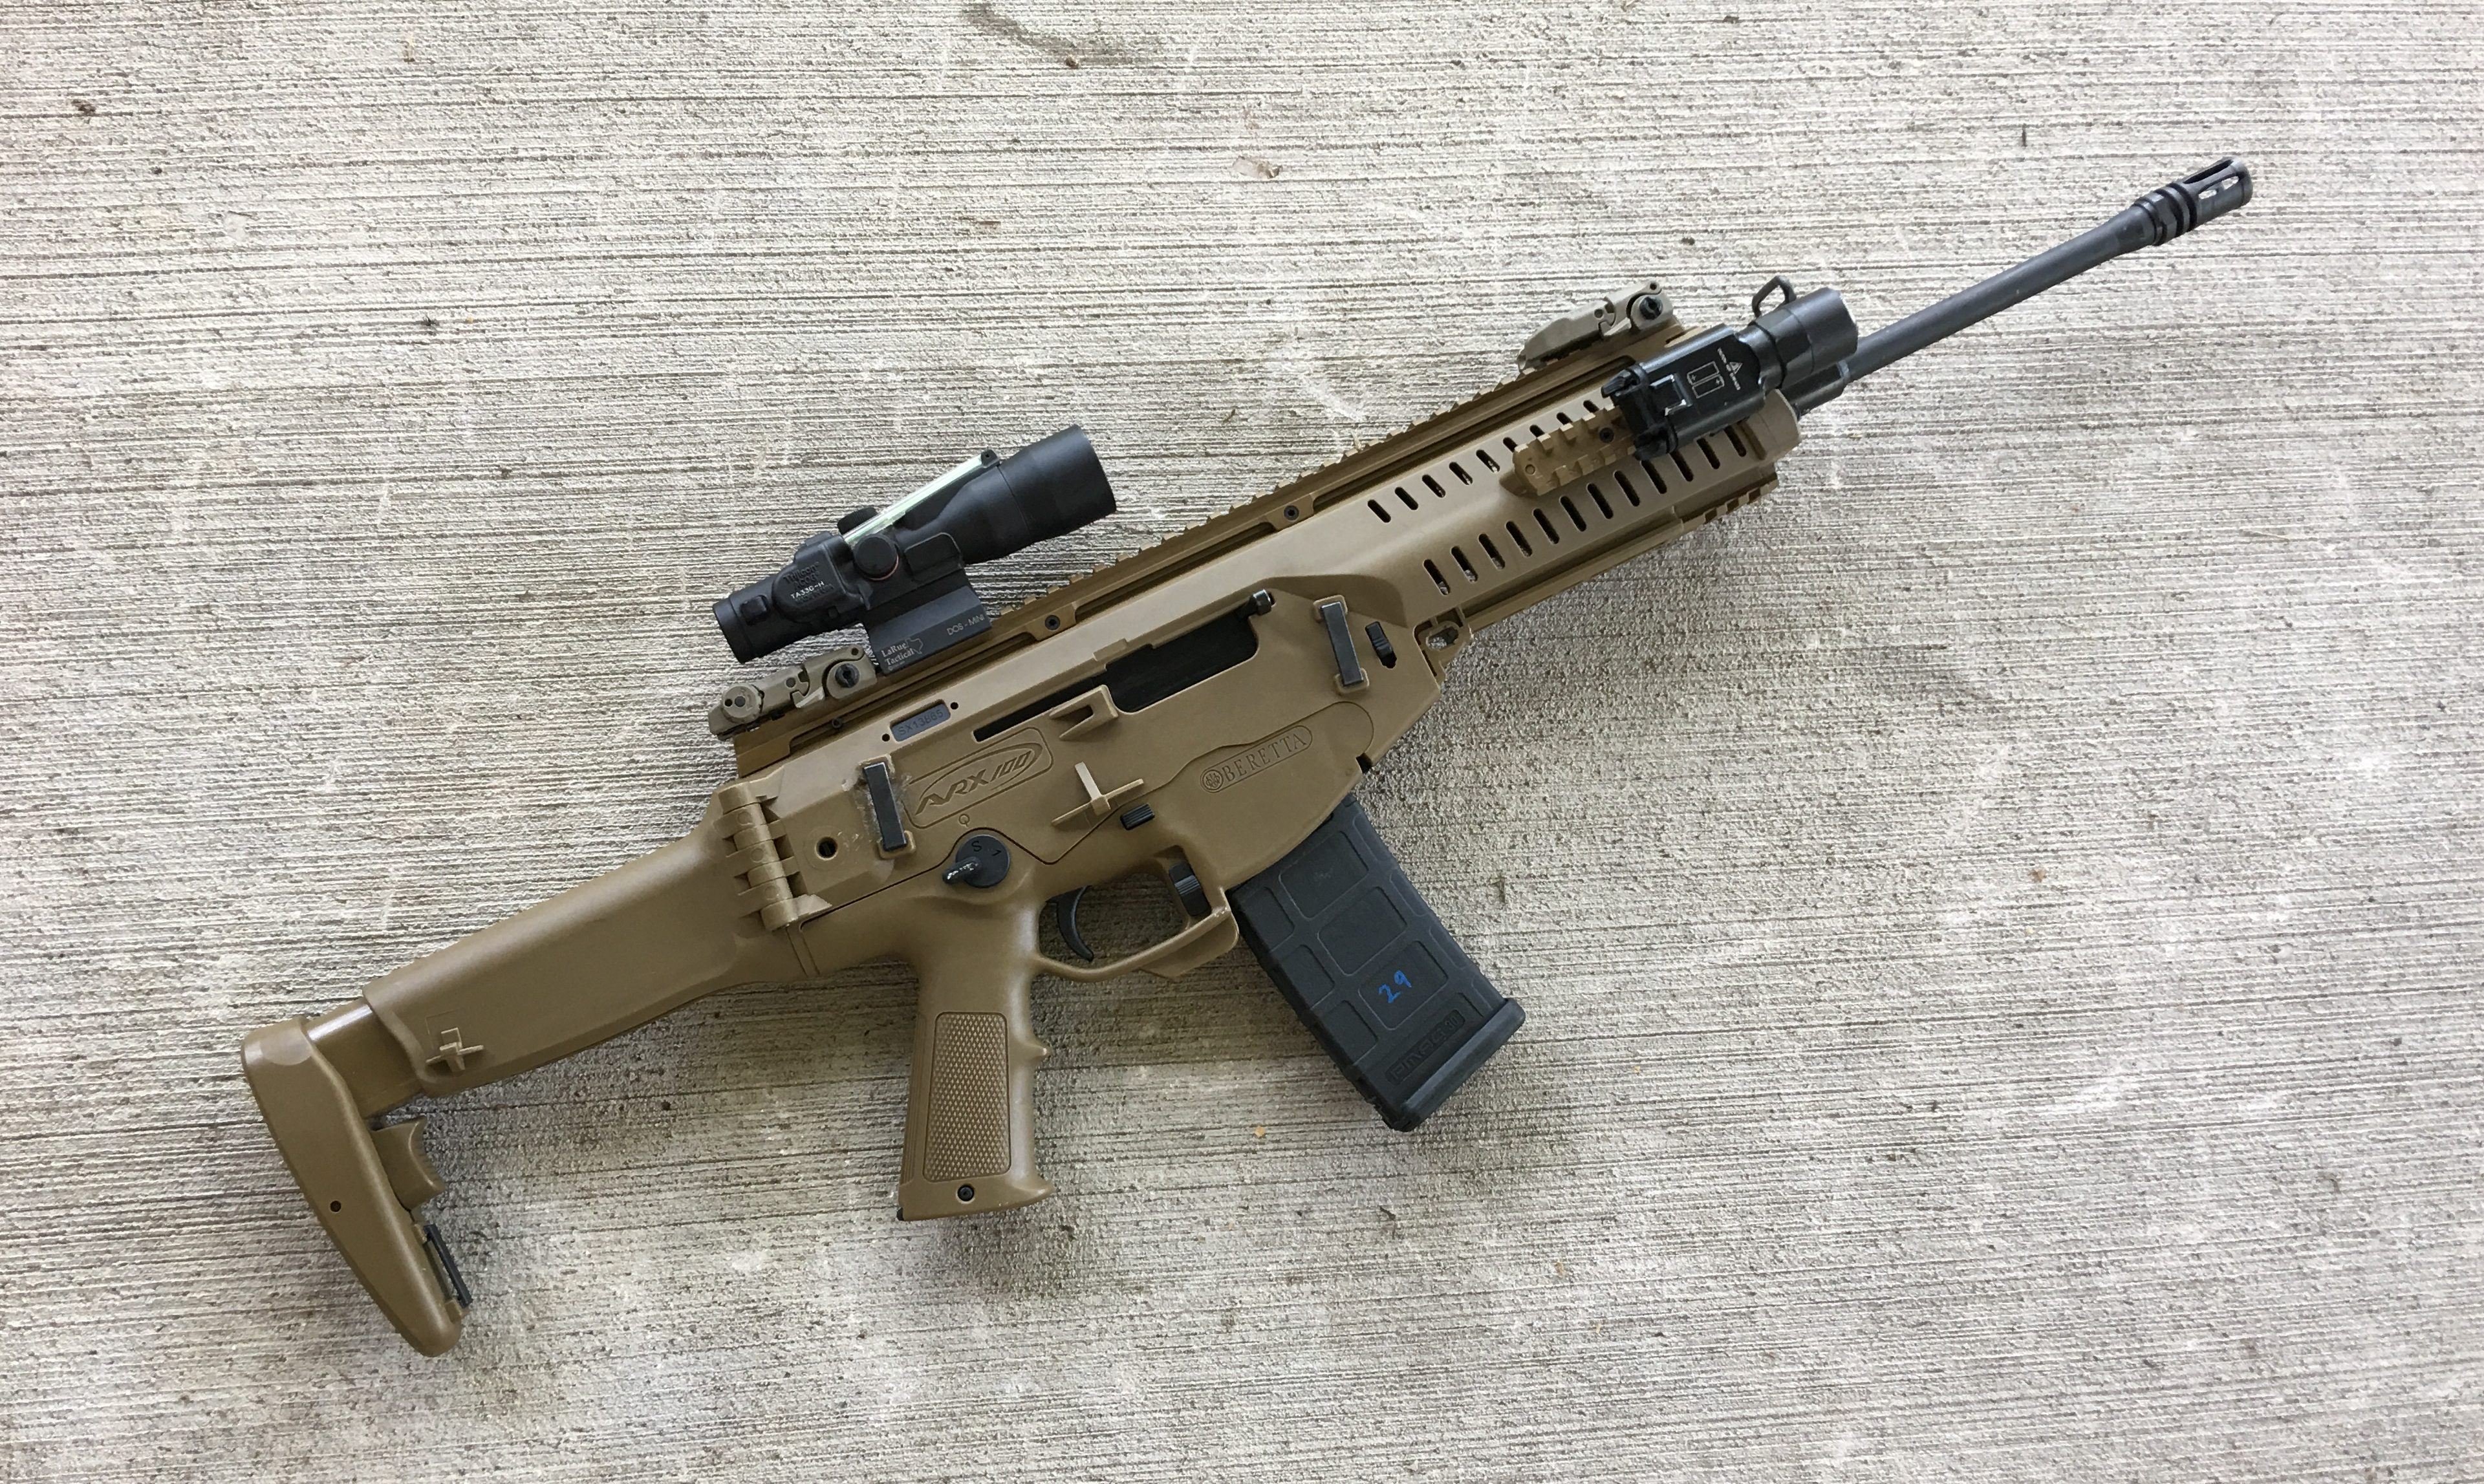 Sink or Swim: A Review of the Beretta ARX-100 - The Kommando